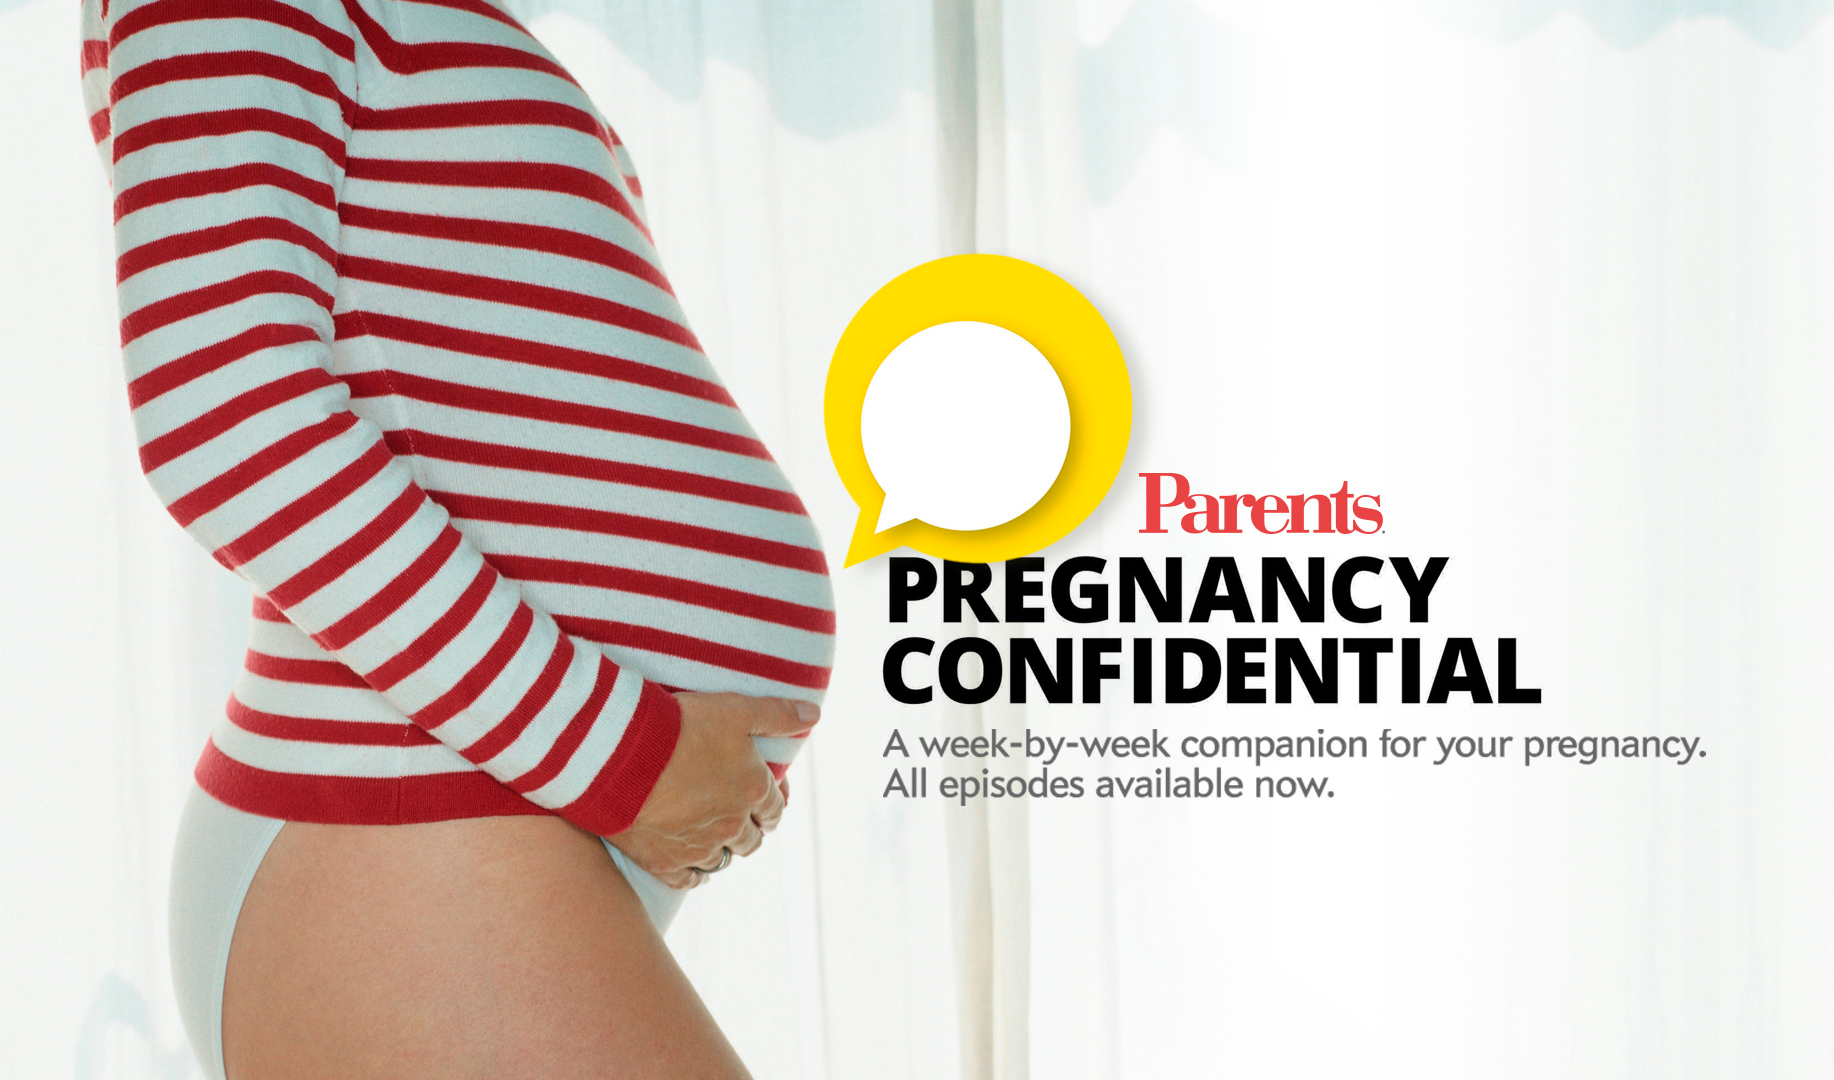 Pregnancy Confidential: A Week-by-Week Pregnancy Podcast